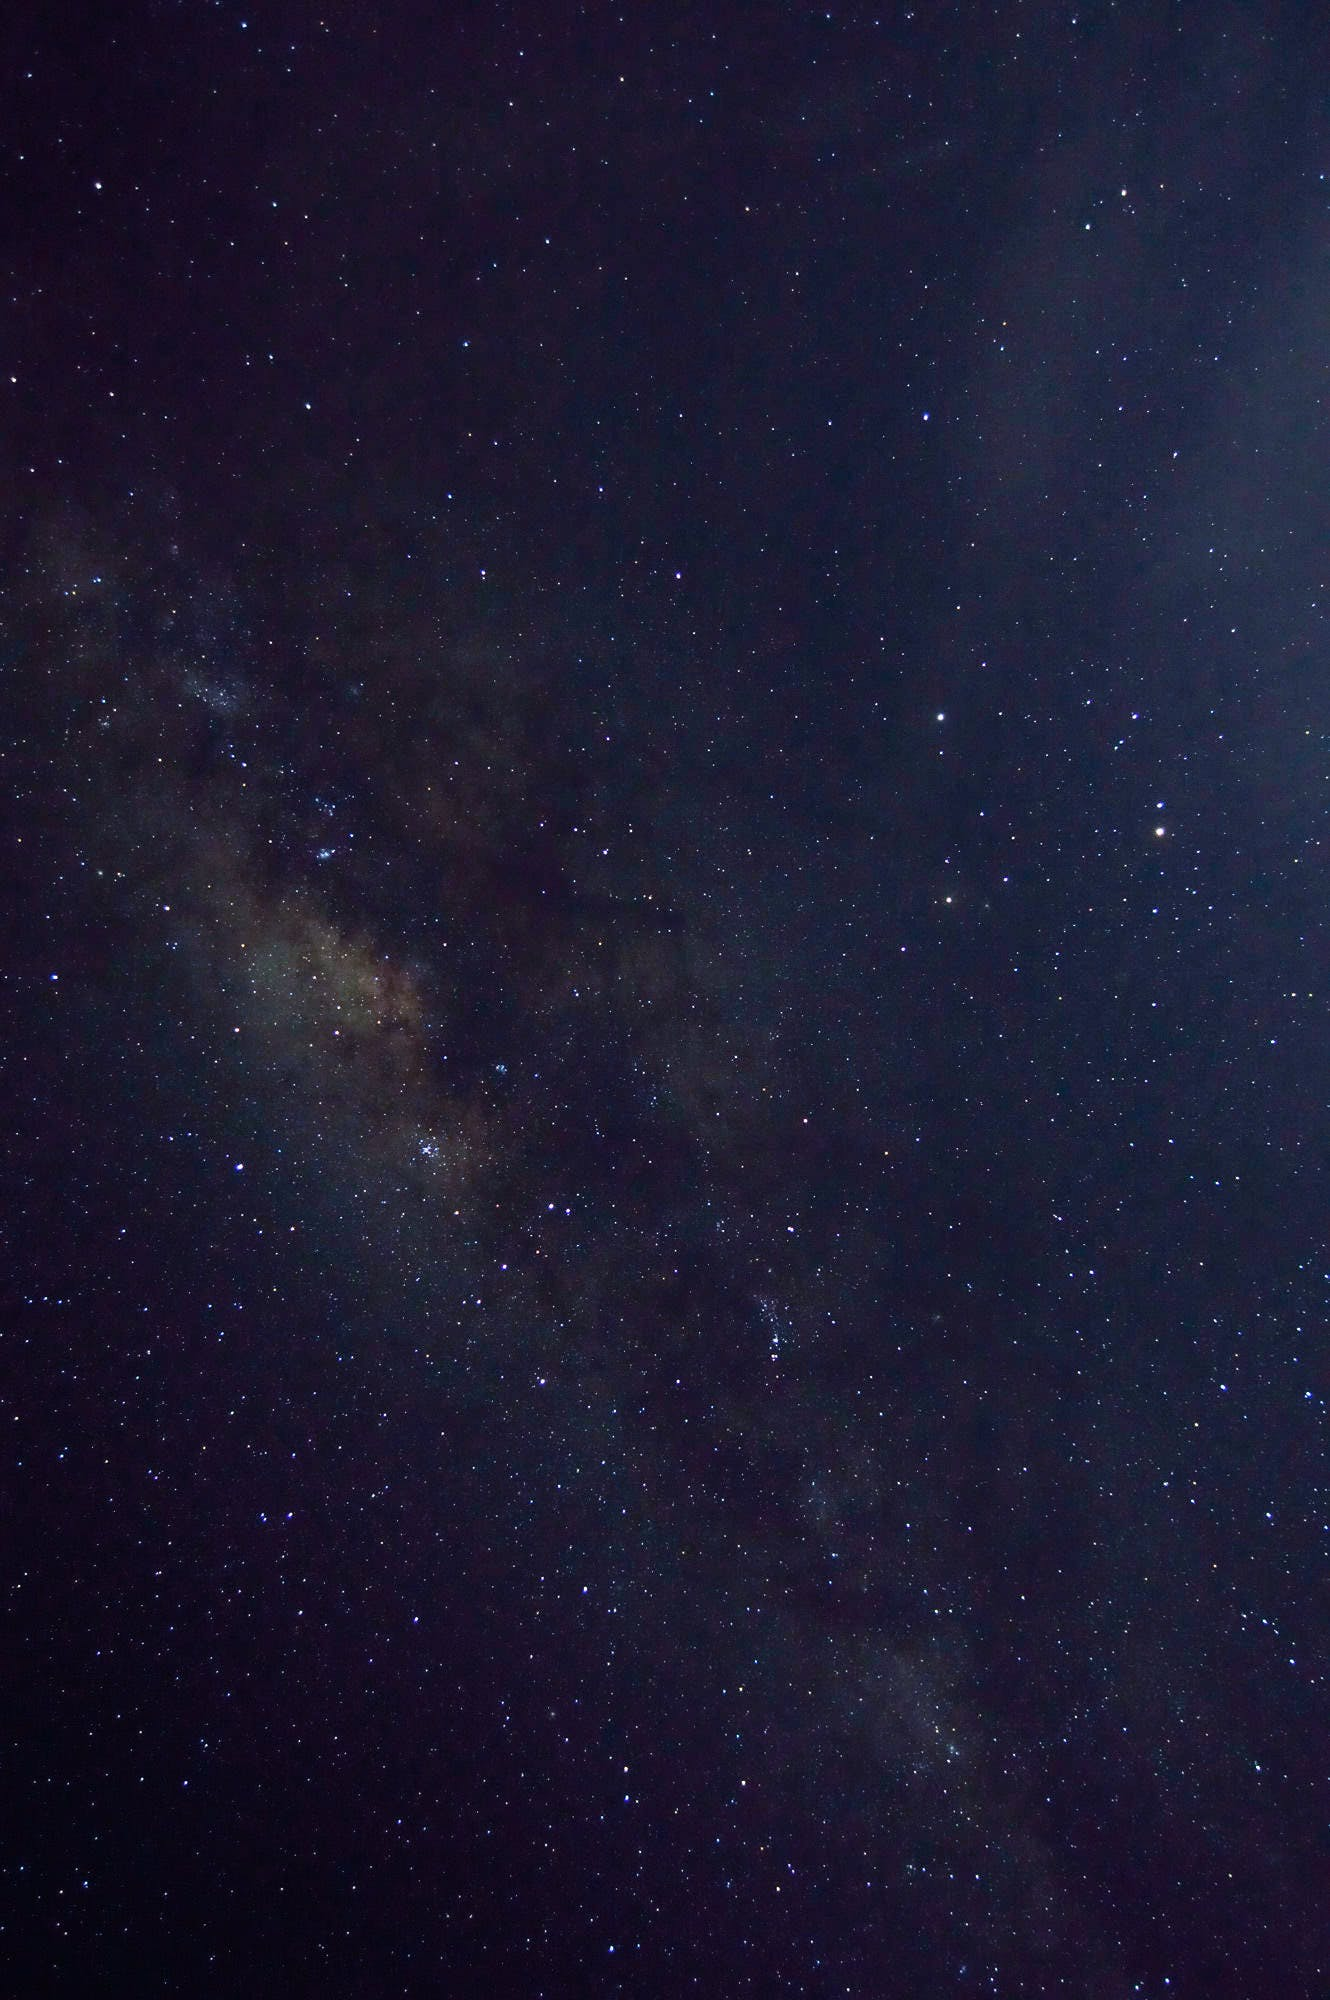 Milky Way Galaxy Seen on Sky